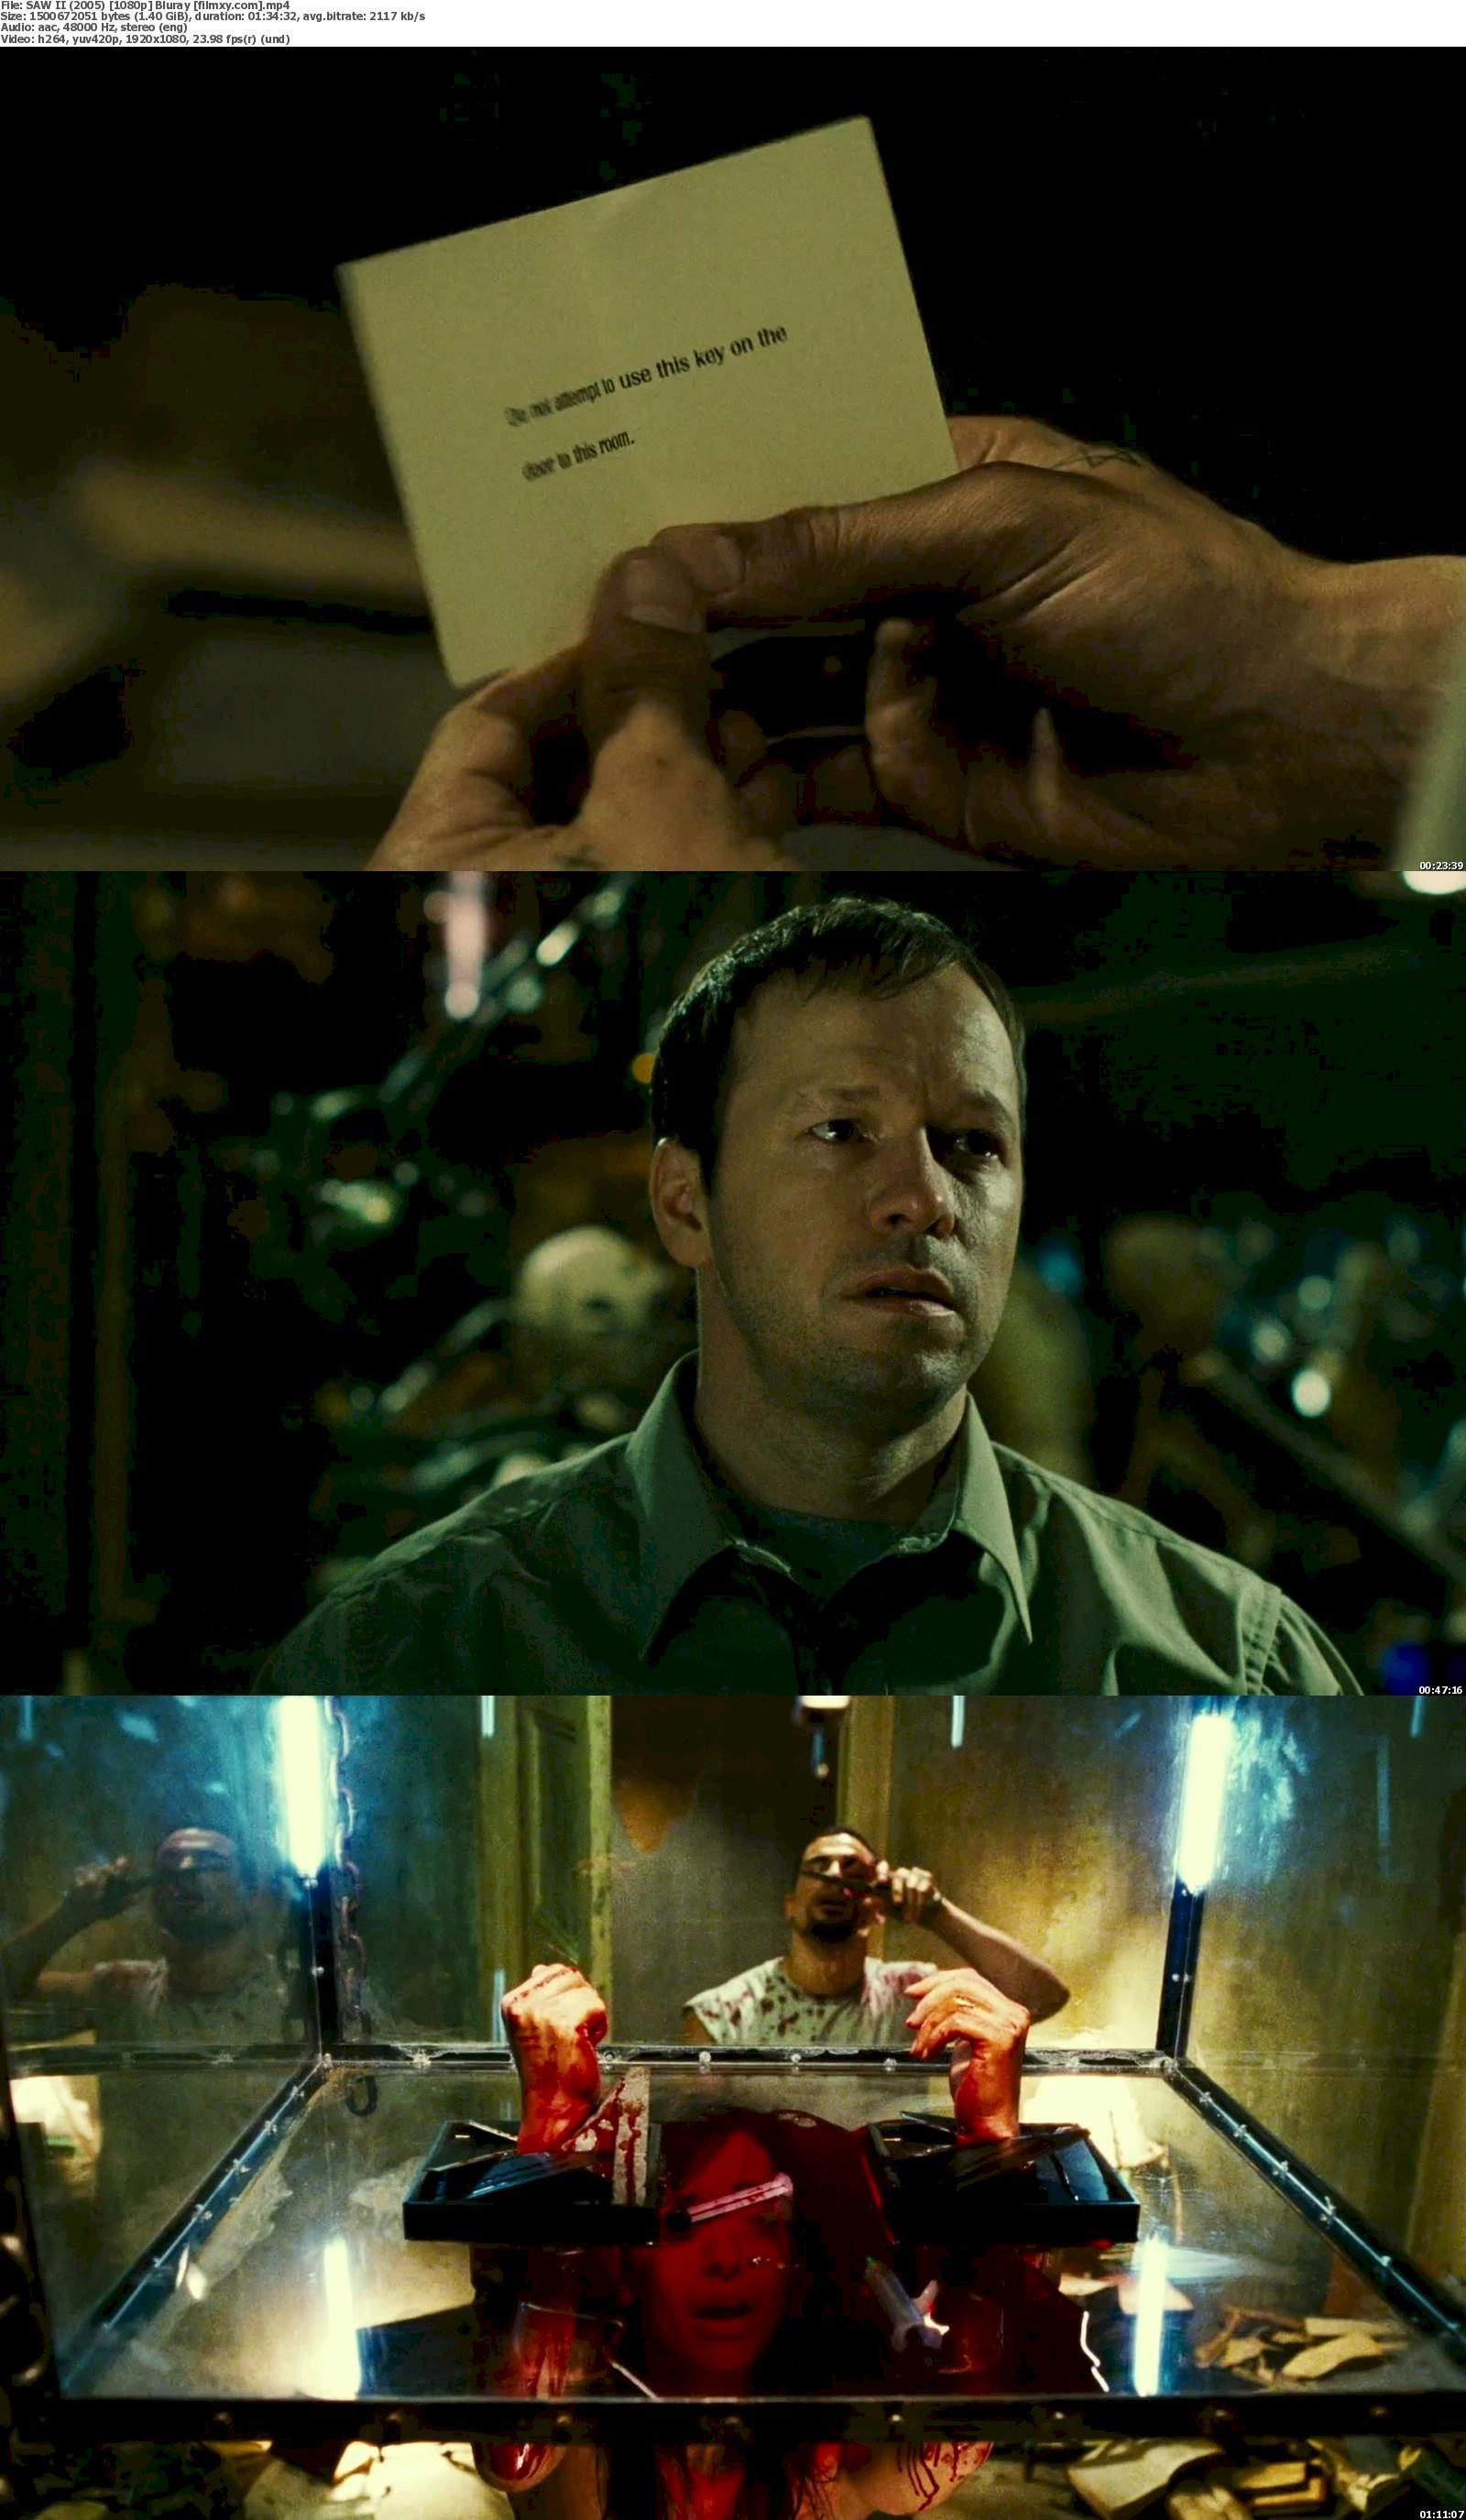 SAW II (2005) 720p & 1080p Bluray Free Download 1080p Screenshot